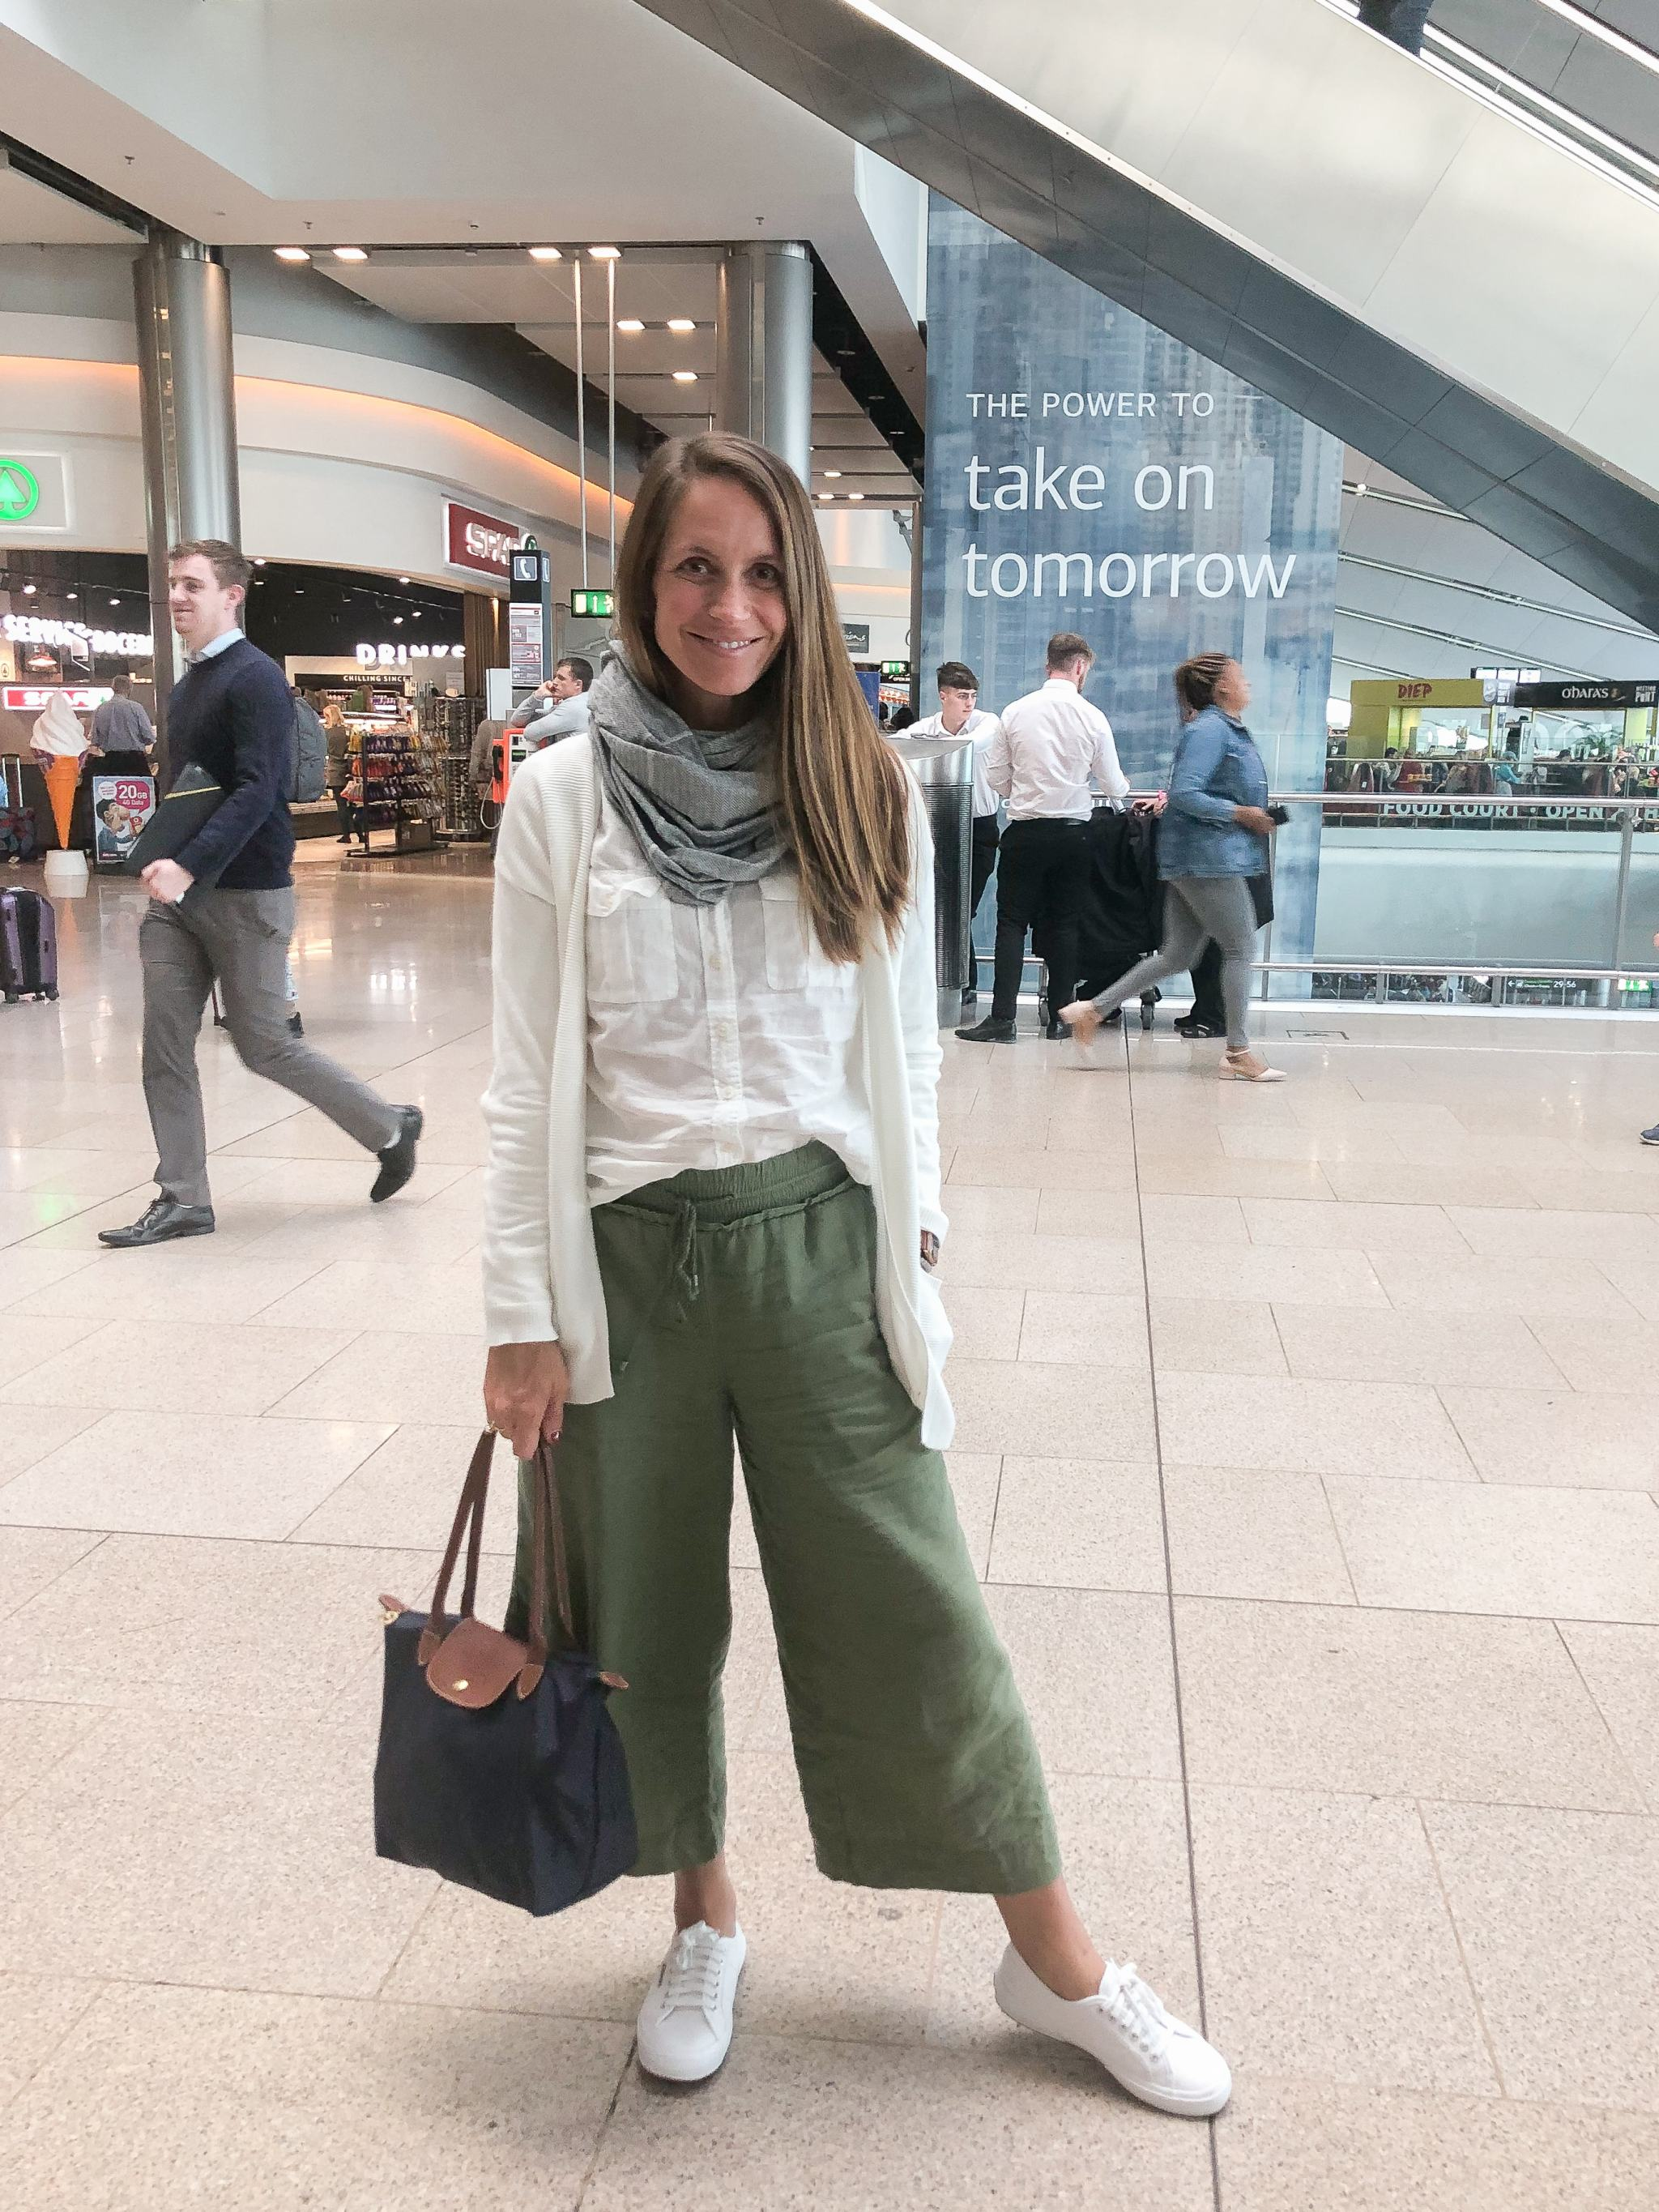 classic style - maternity style - second trimester outfit idea - pregnancy style - travel outfit ideas - linen pants and sneakers - walmart linen pants - walmart fashion - travel outfit inspo - white superga sneakers - superga cotu sneakers